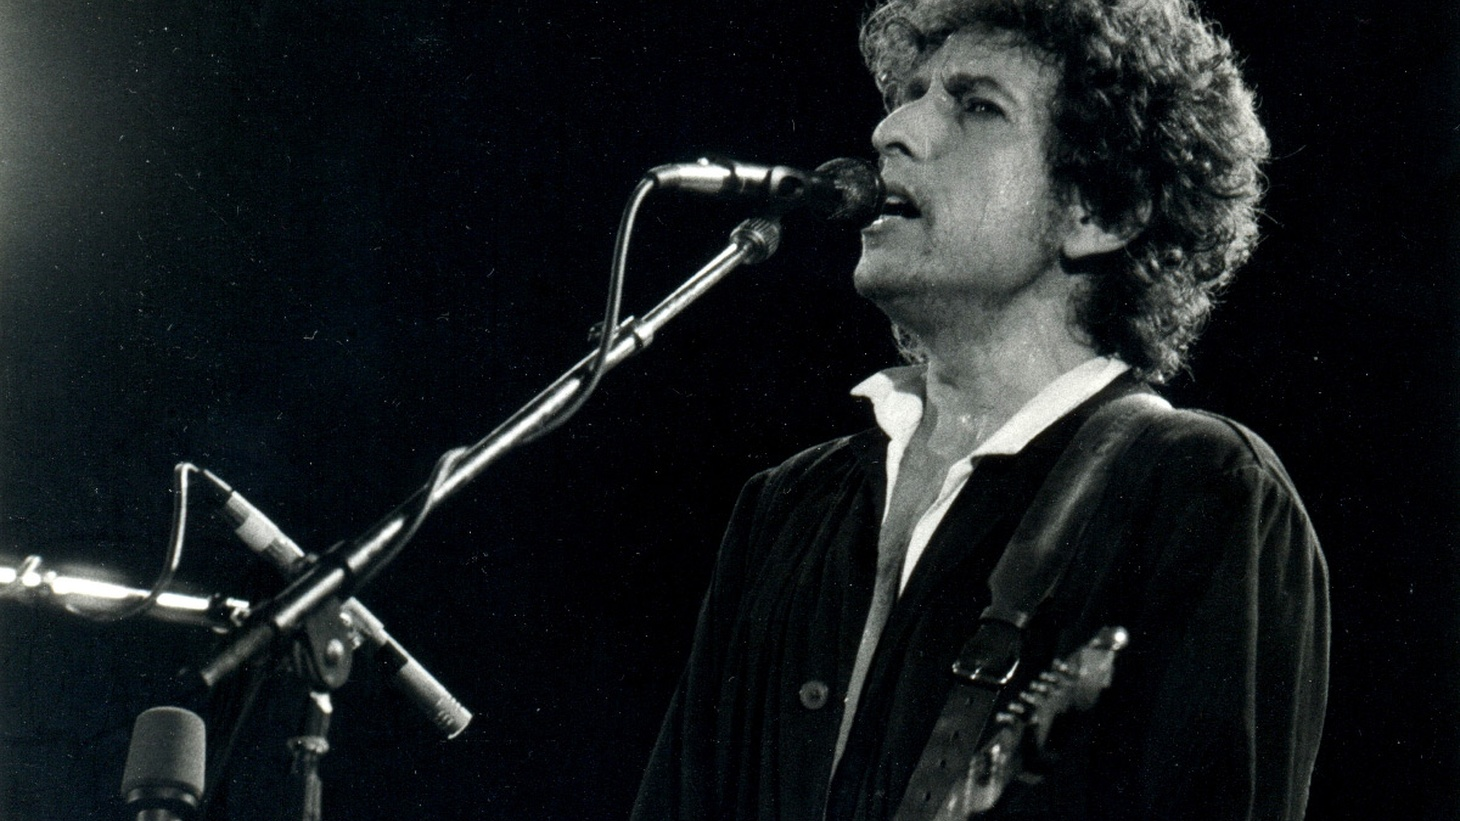 Bob Dylan was awarded the Nobel Prize in Literature today to the surprise of many Nobel watchers. And with less than month to go before the election, how are Bernie Sanders supporters feeling?